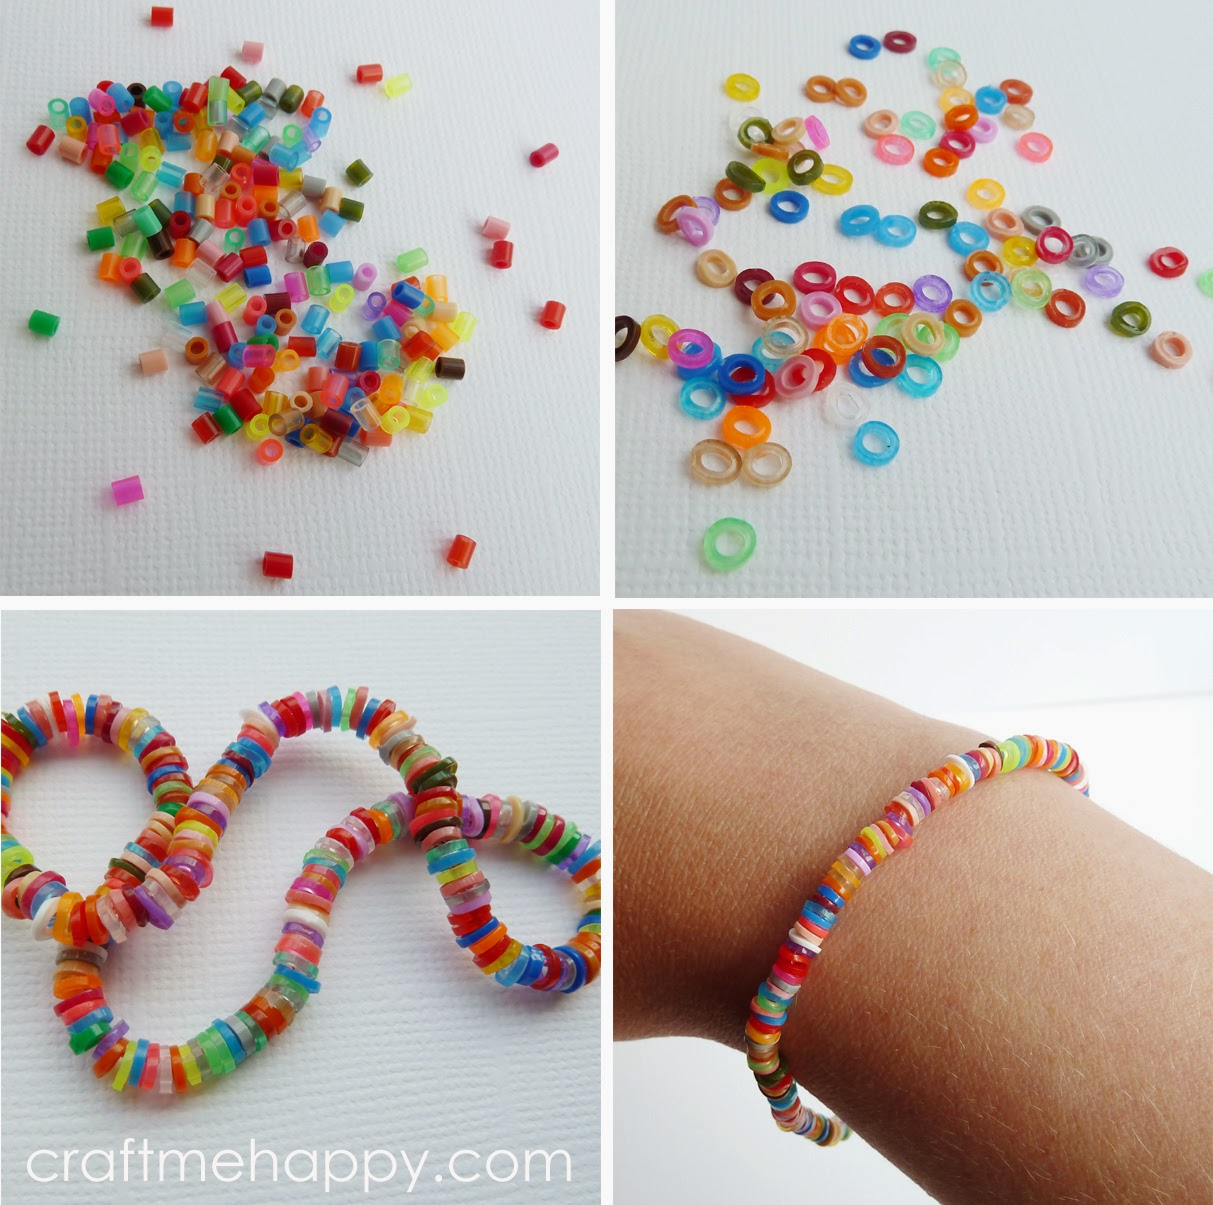 ae crafts craftaholics anonymous bracelet perler bead